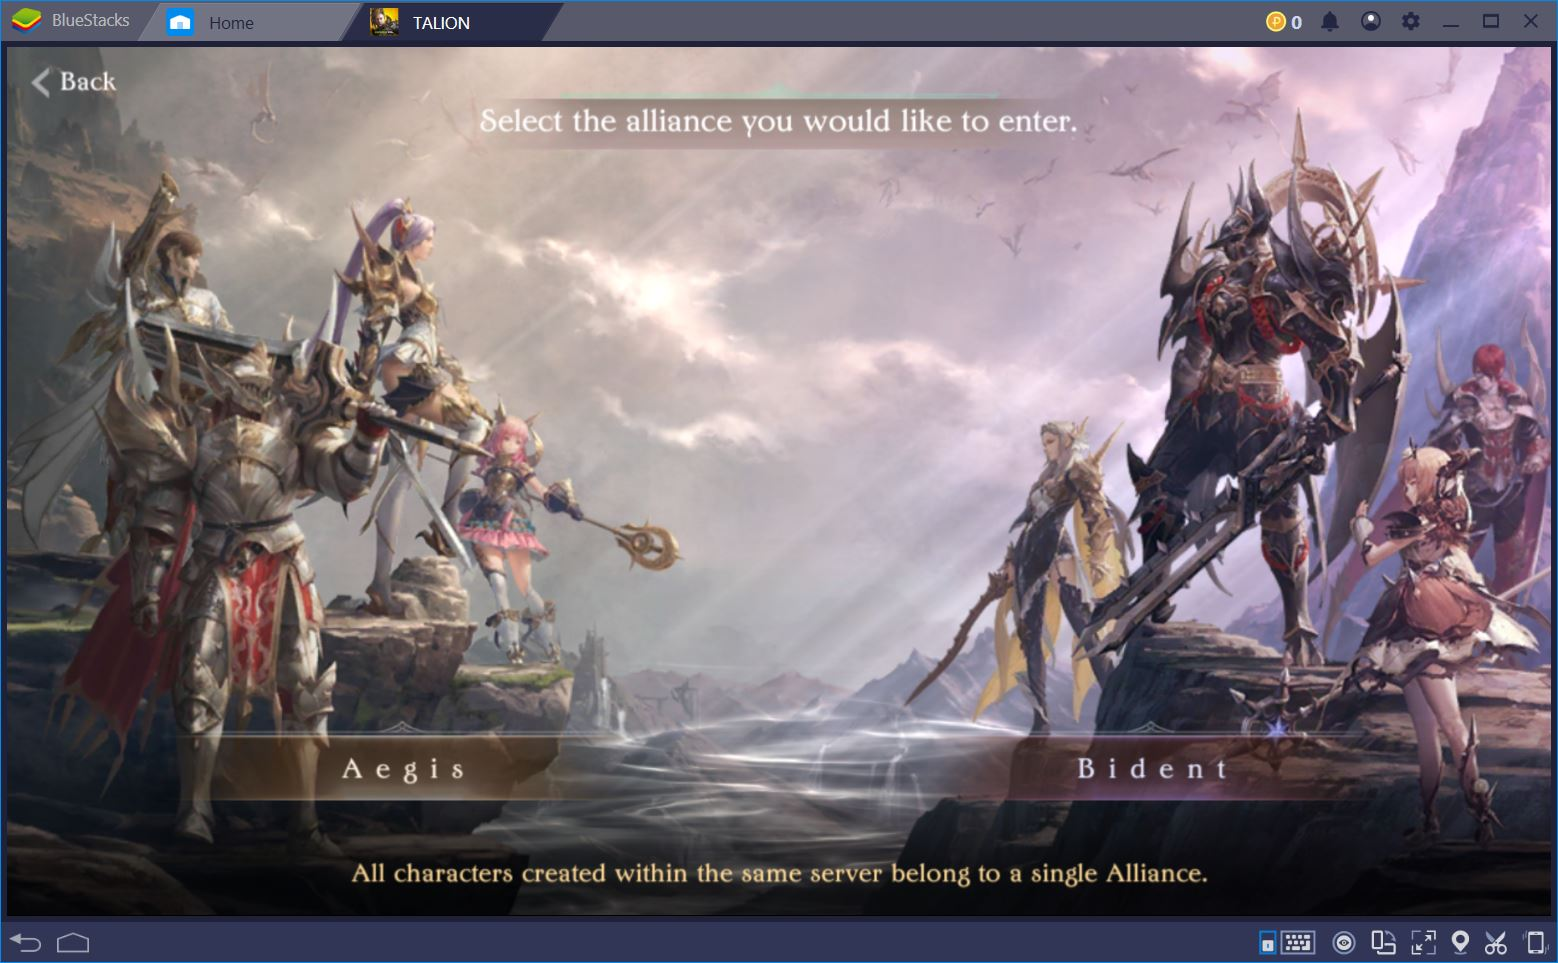 Aegis vs. Bident: A Guide to Alliances and RvR Modes in Talion